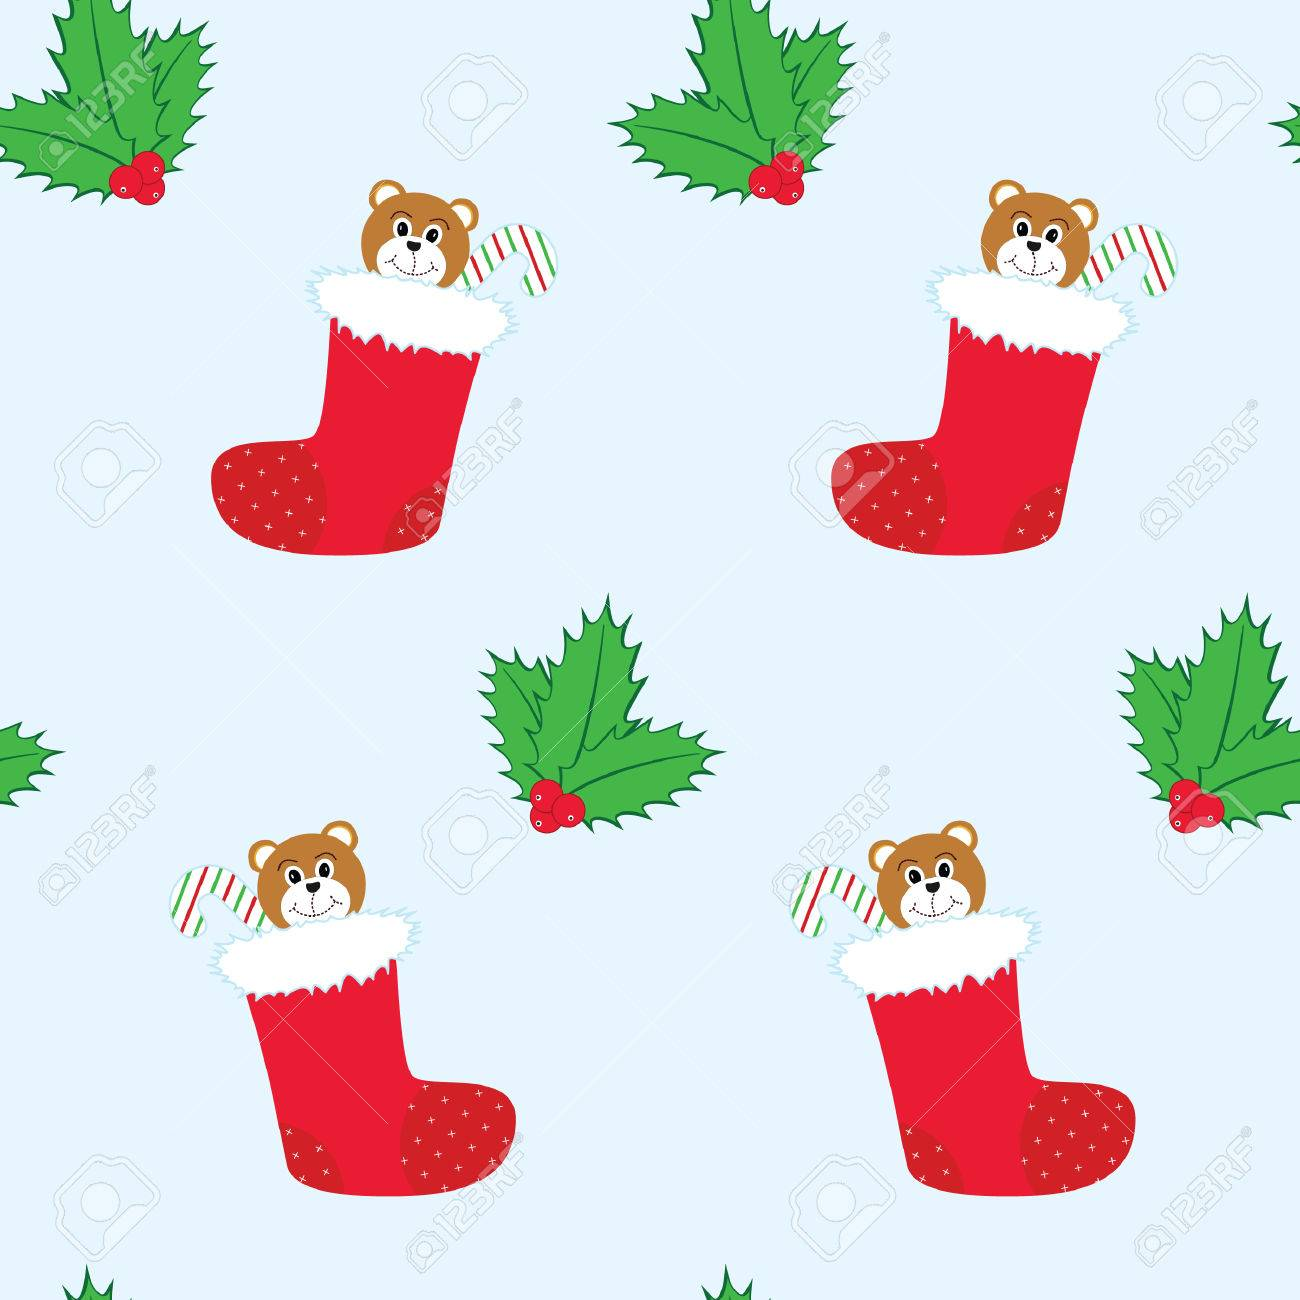 seamless tiling christmas background with stockings and holly